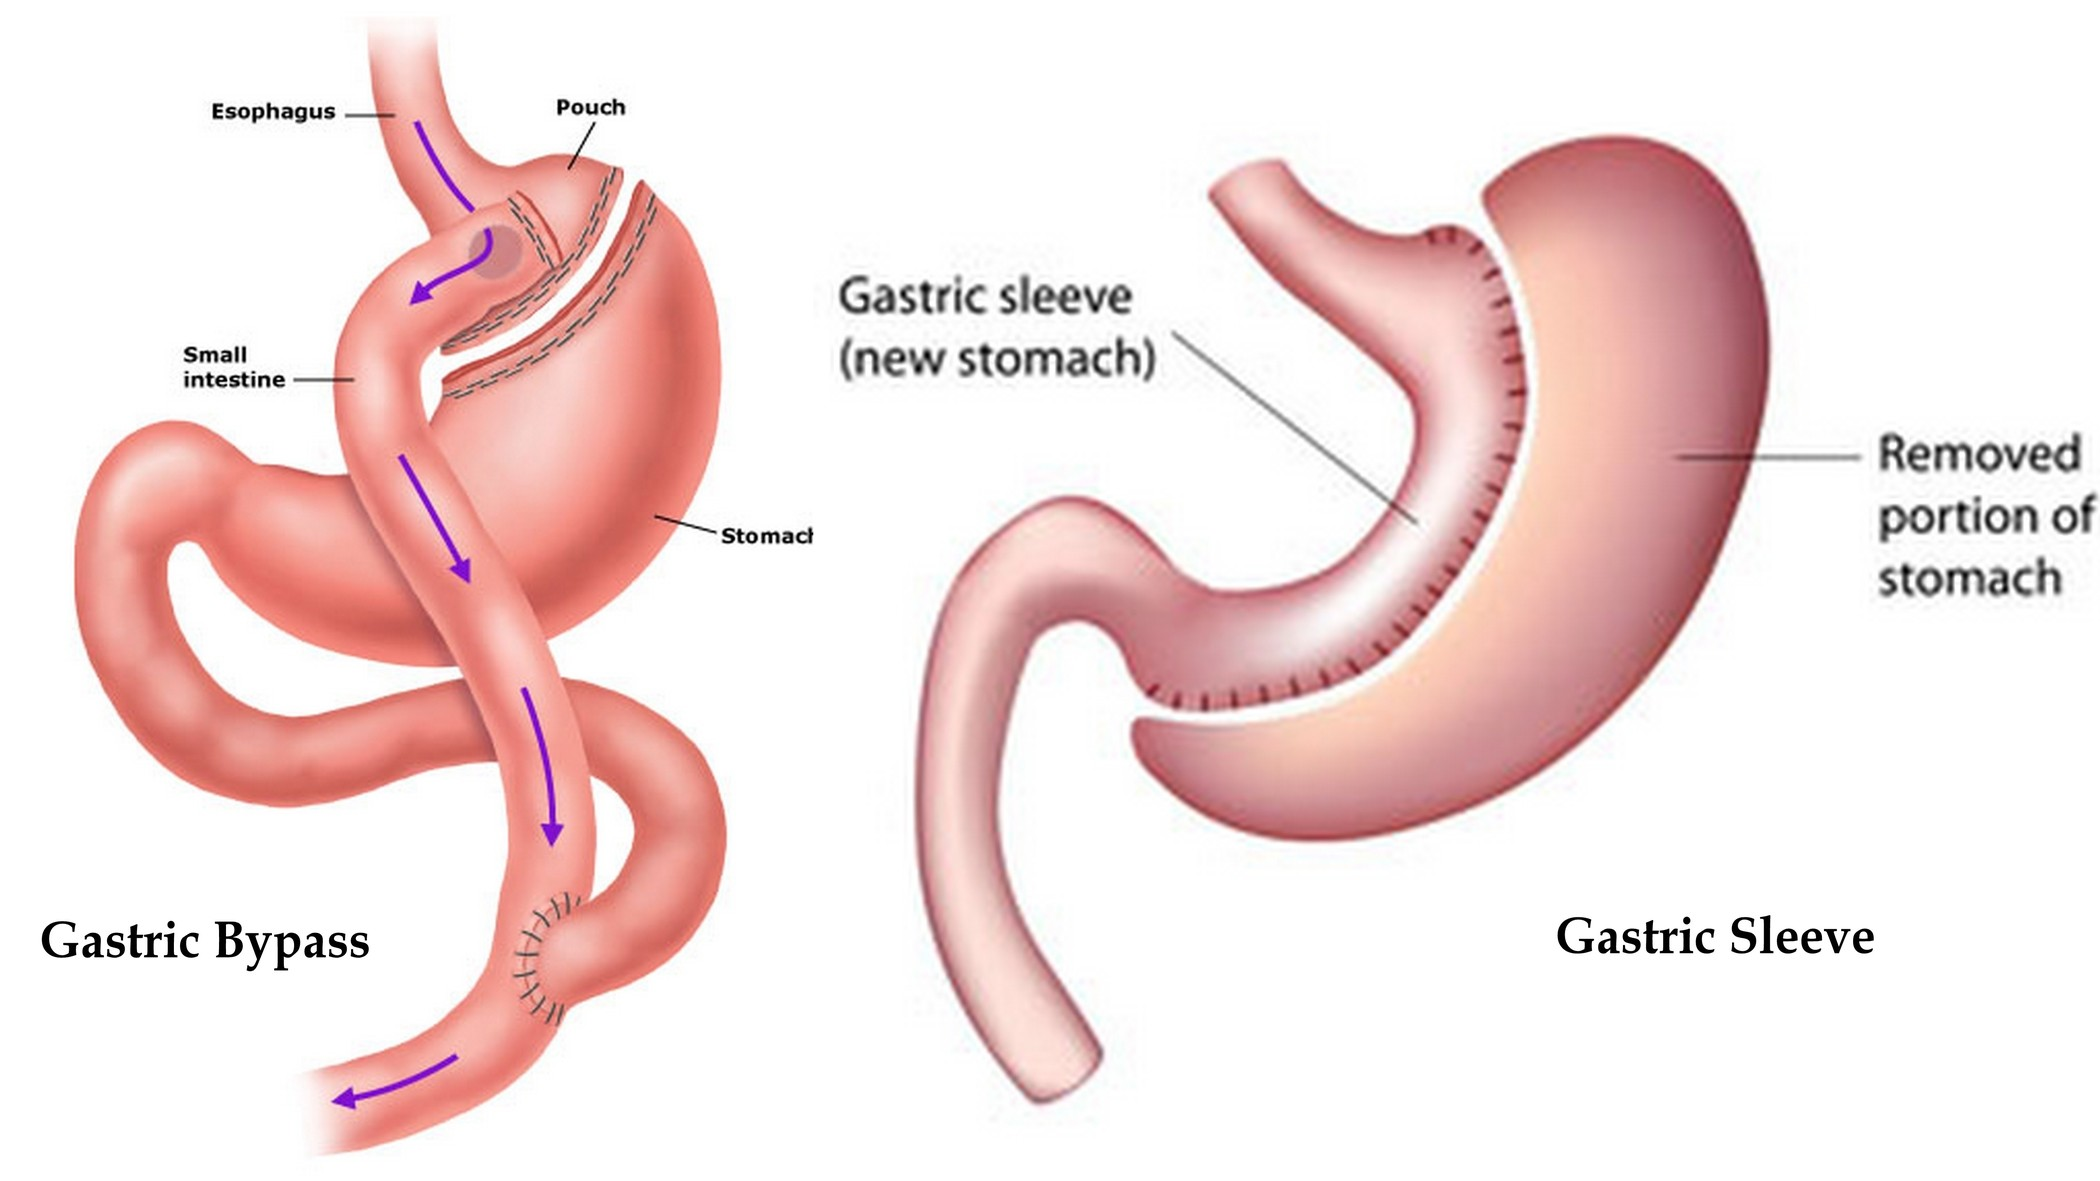 What is the difference between Gastric Bypass and Gastric Sleeve surgery?